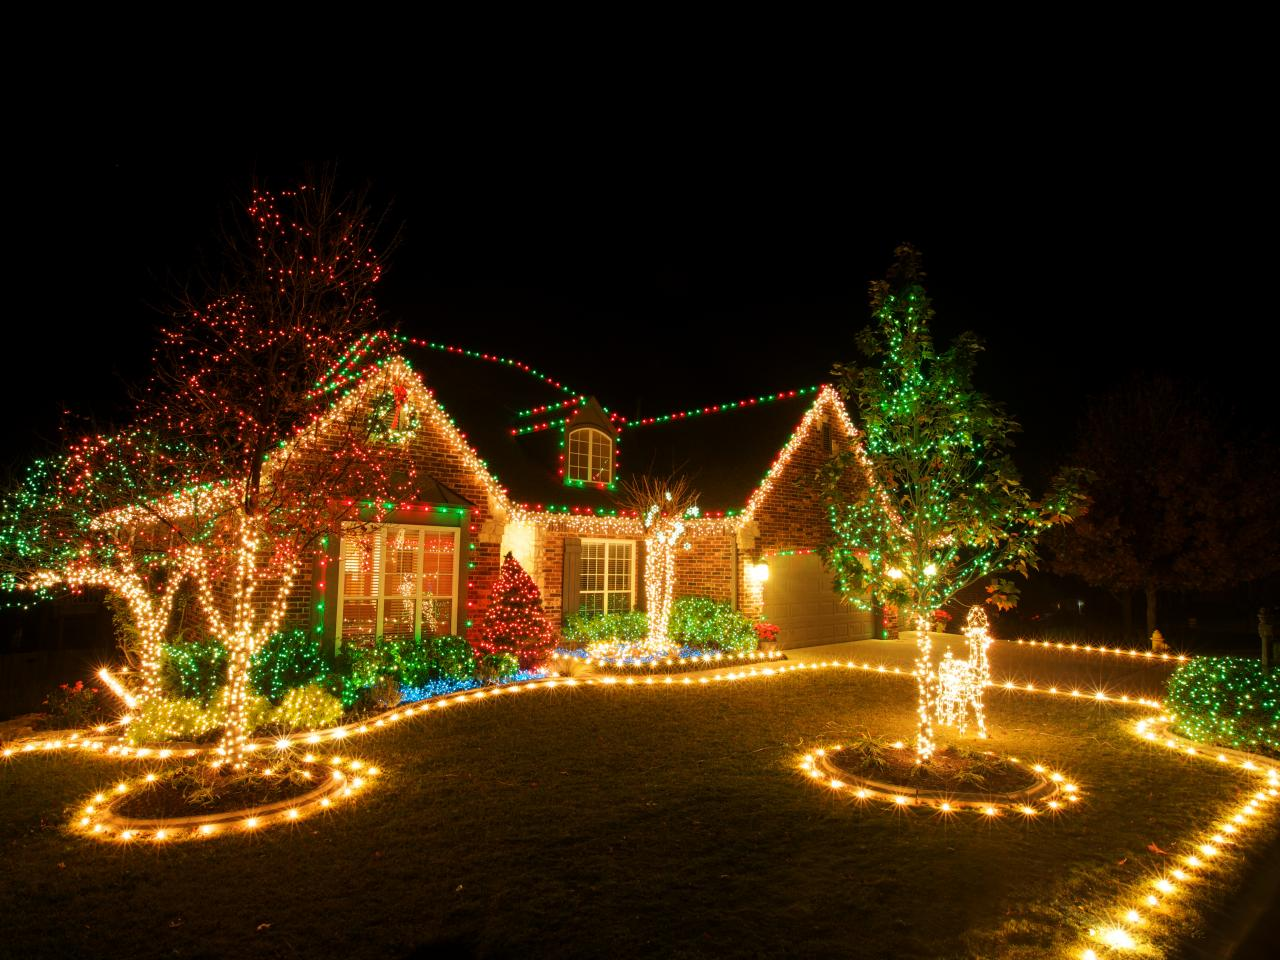 How to install safety christmas lights on outdoor trees warisan regarding electricity when installing christmas lights on outdoor trees mozeypictures Images